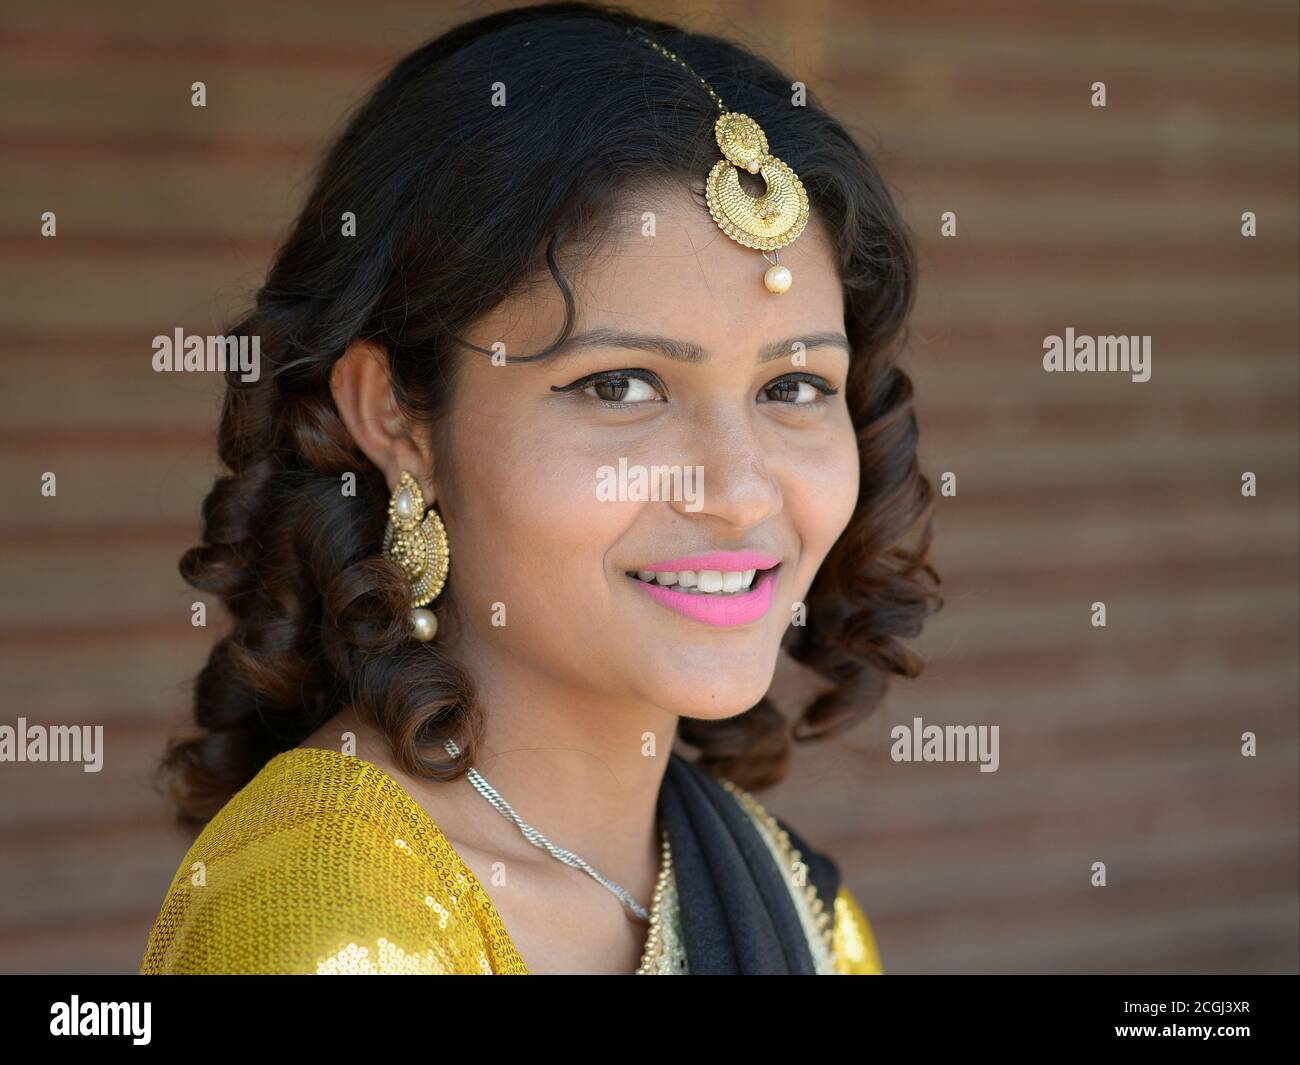 Nepali Style High Resolution Stock Photography And Images Alamy